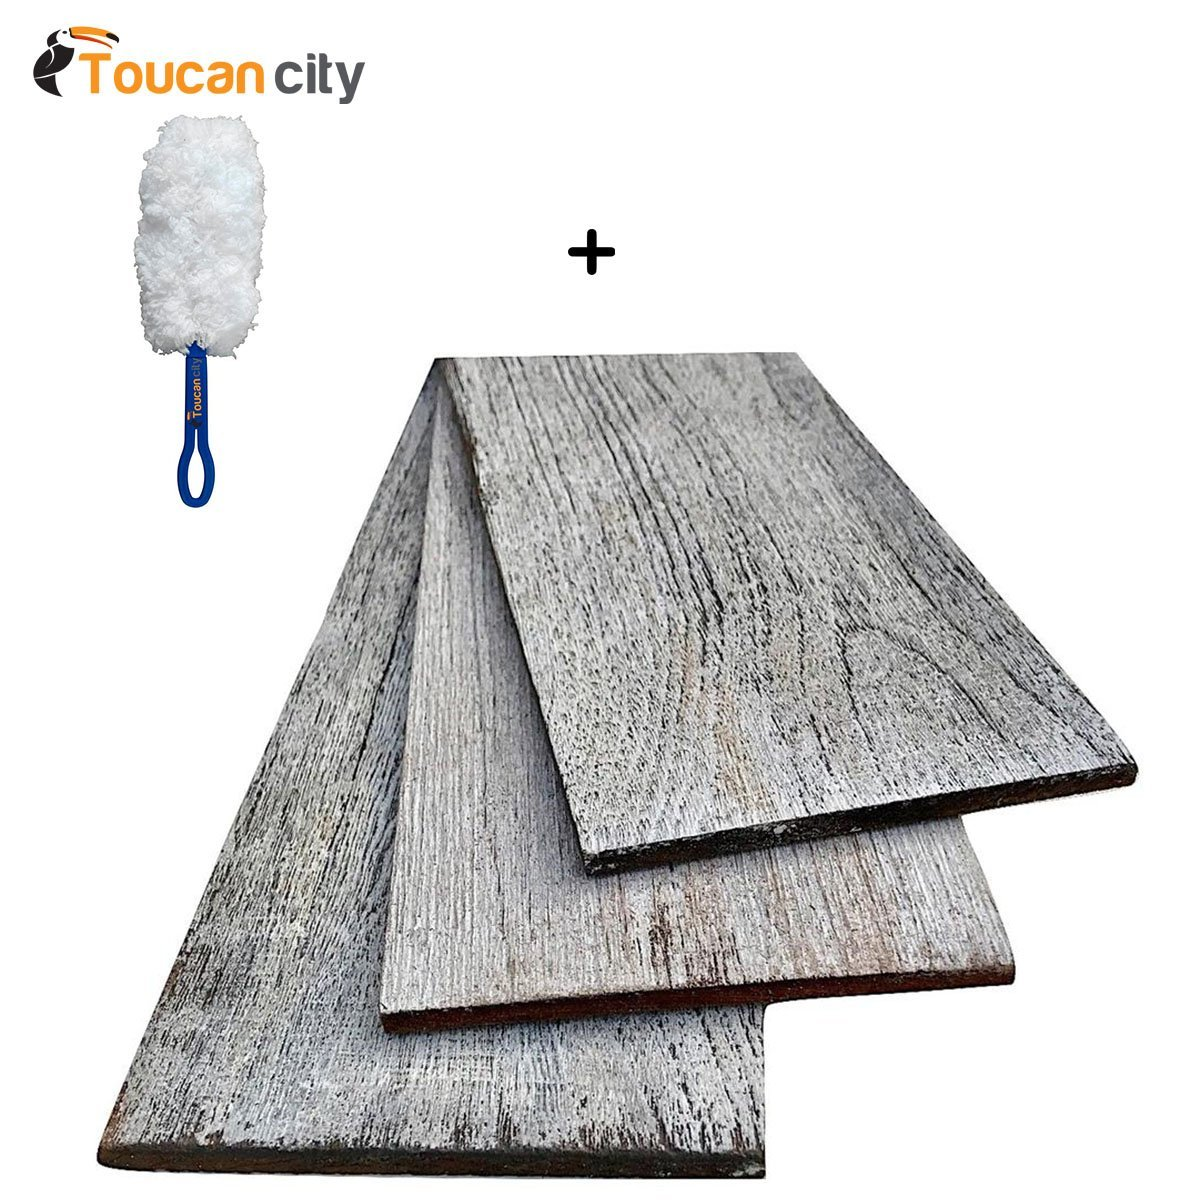 Toucan City Microfiber Dash Duster and 1/4 in. x 5 in. x 2 ft. Gray Reclaimed Smart Paneling 3D Barn Wood Wall Plank (Design 3) (12 – Case) 11332